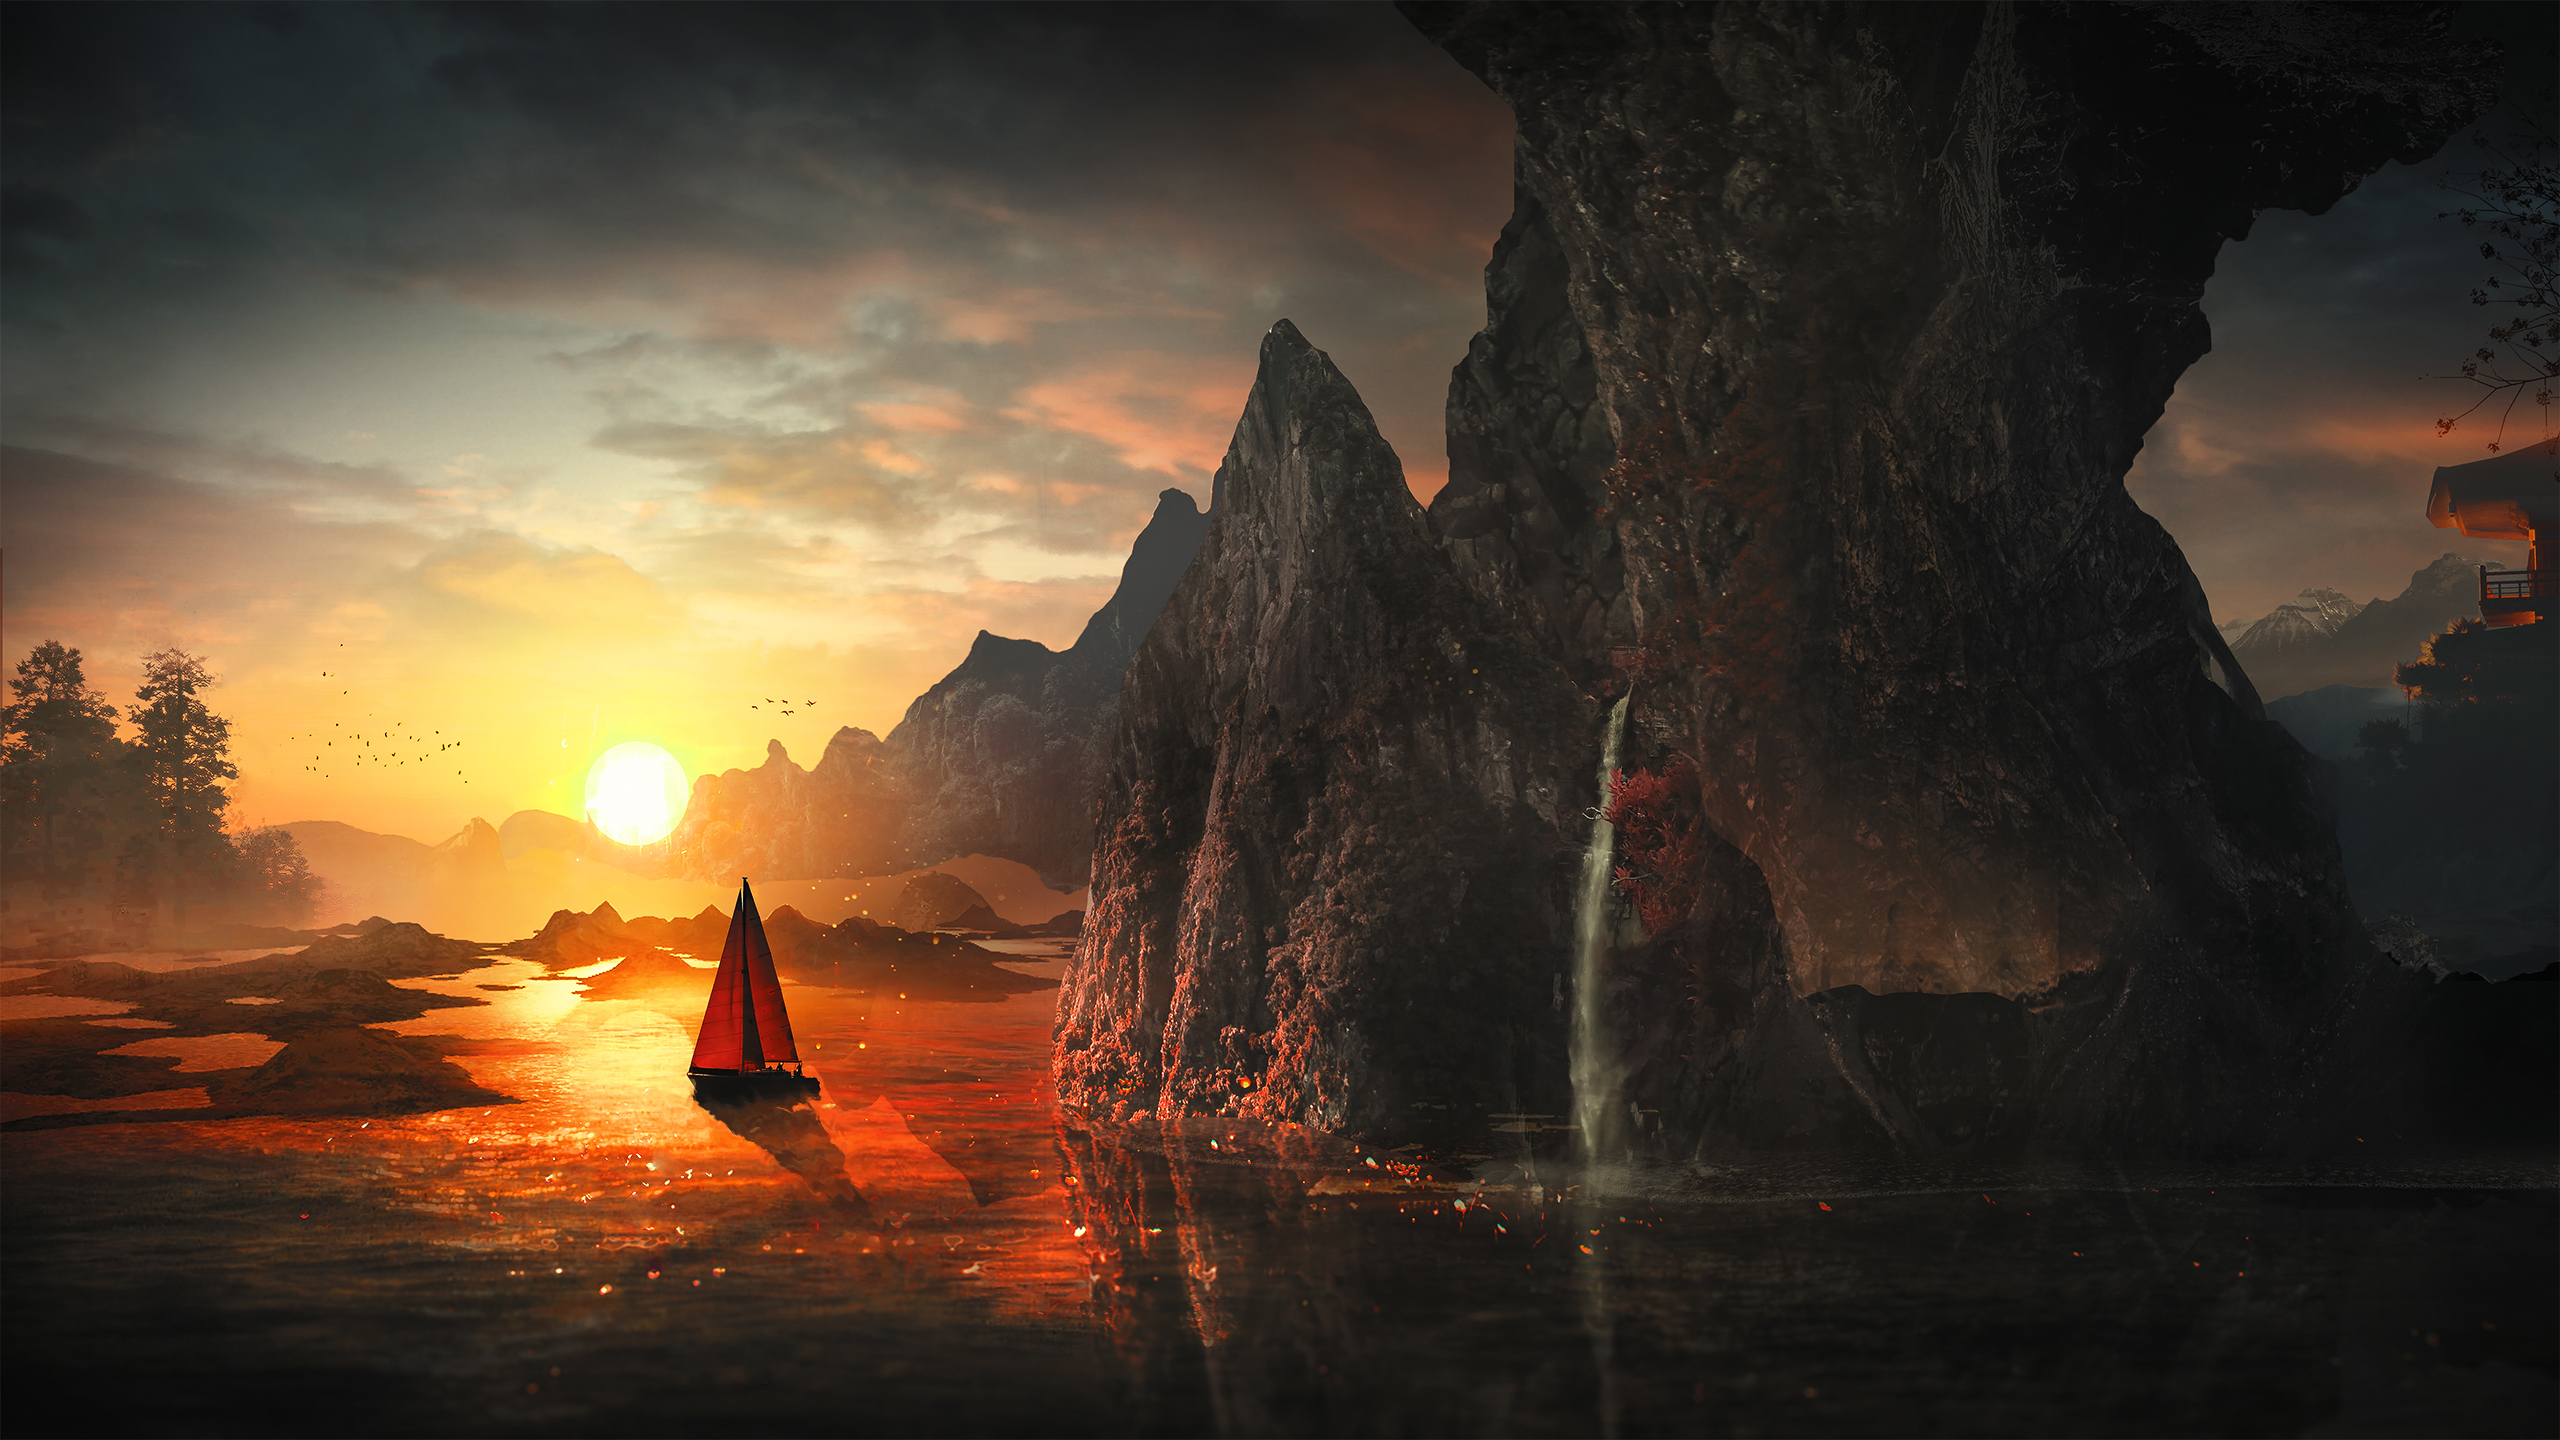 harmony boat creative background hd artist 4k wallpapers images